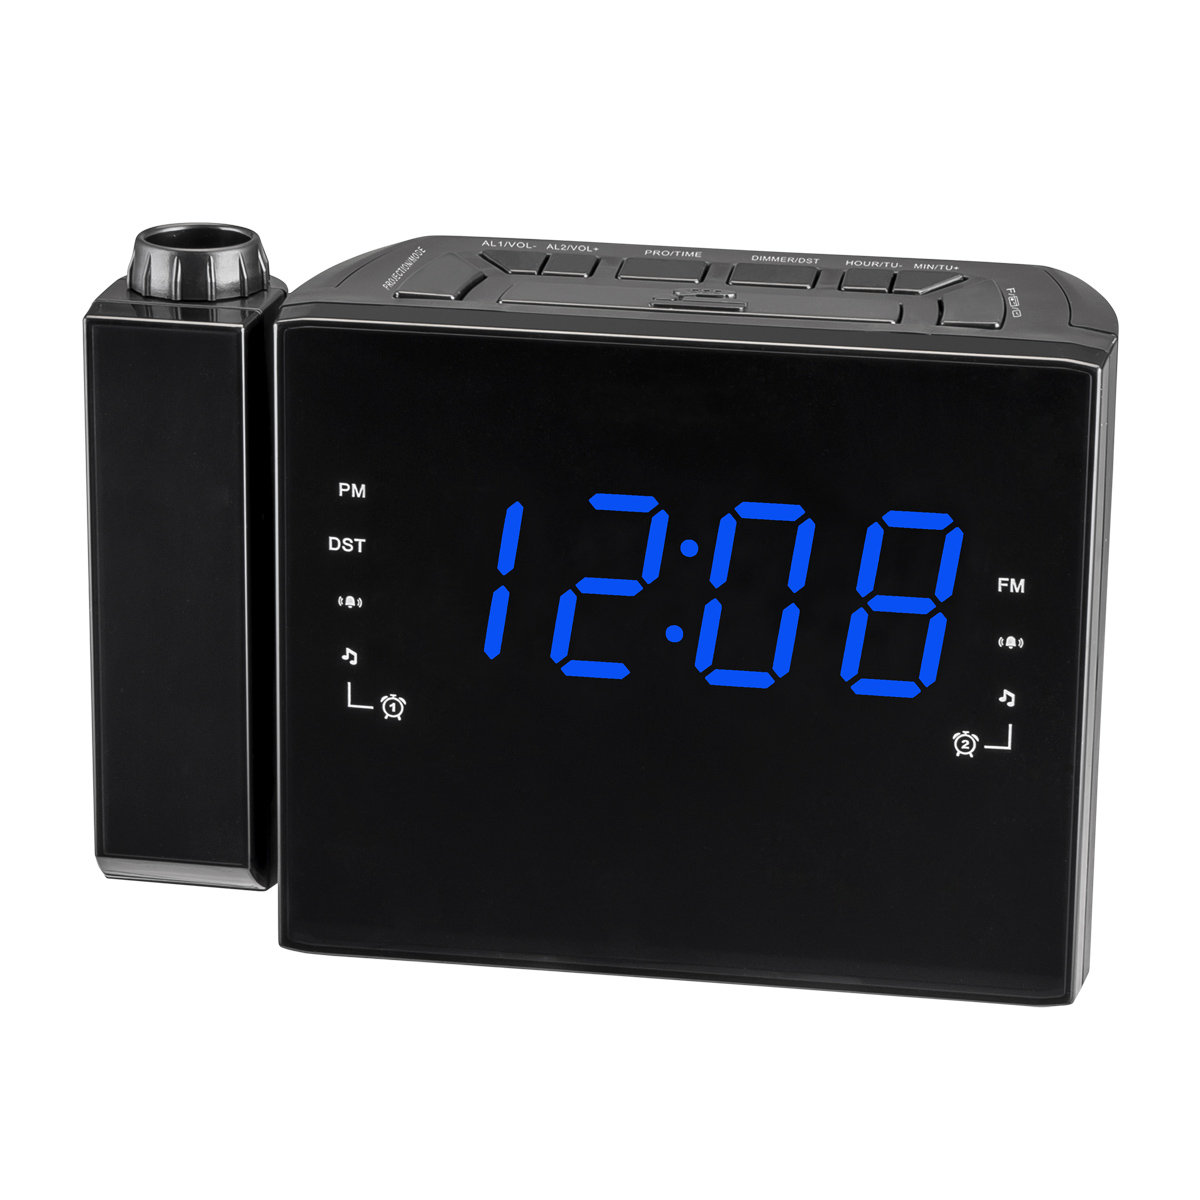 projection clock radio Rated 5 out of 5 by pace-maker from love this clock i love this projection clock i did not need an alarm clock or the radio but what i really needed was the projection capabilities of this clock.